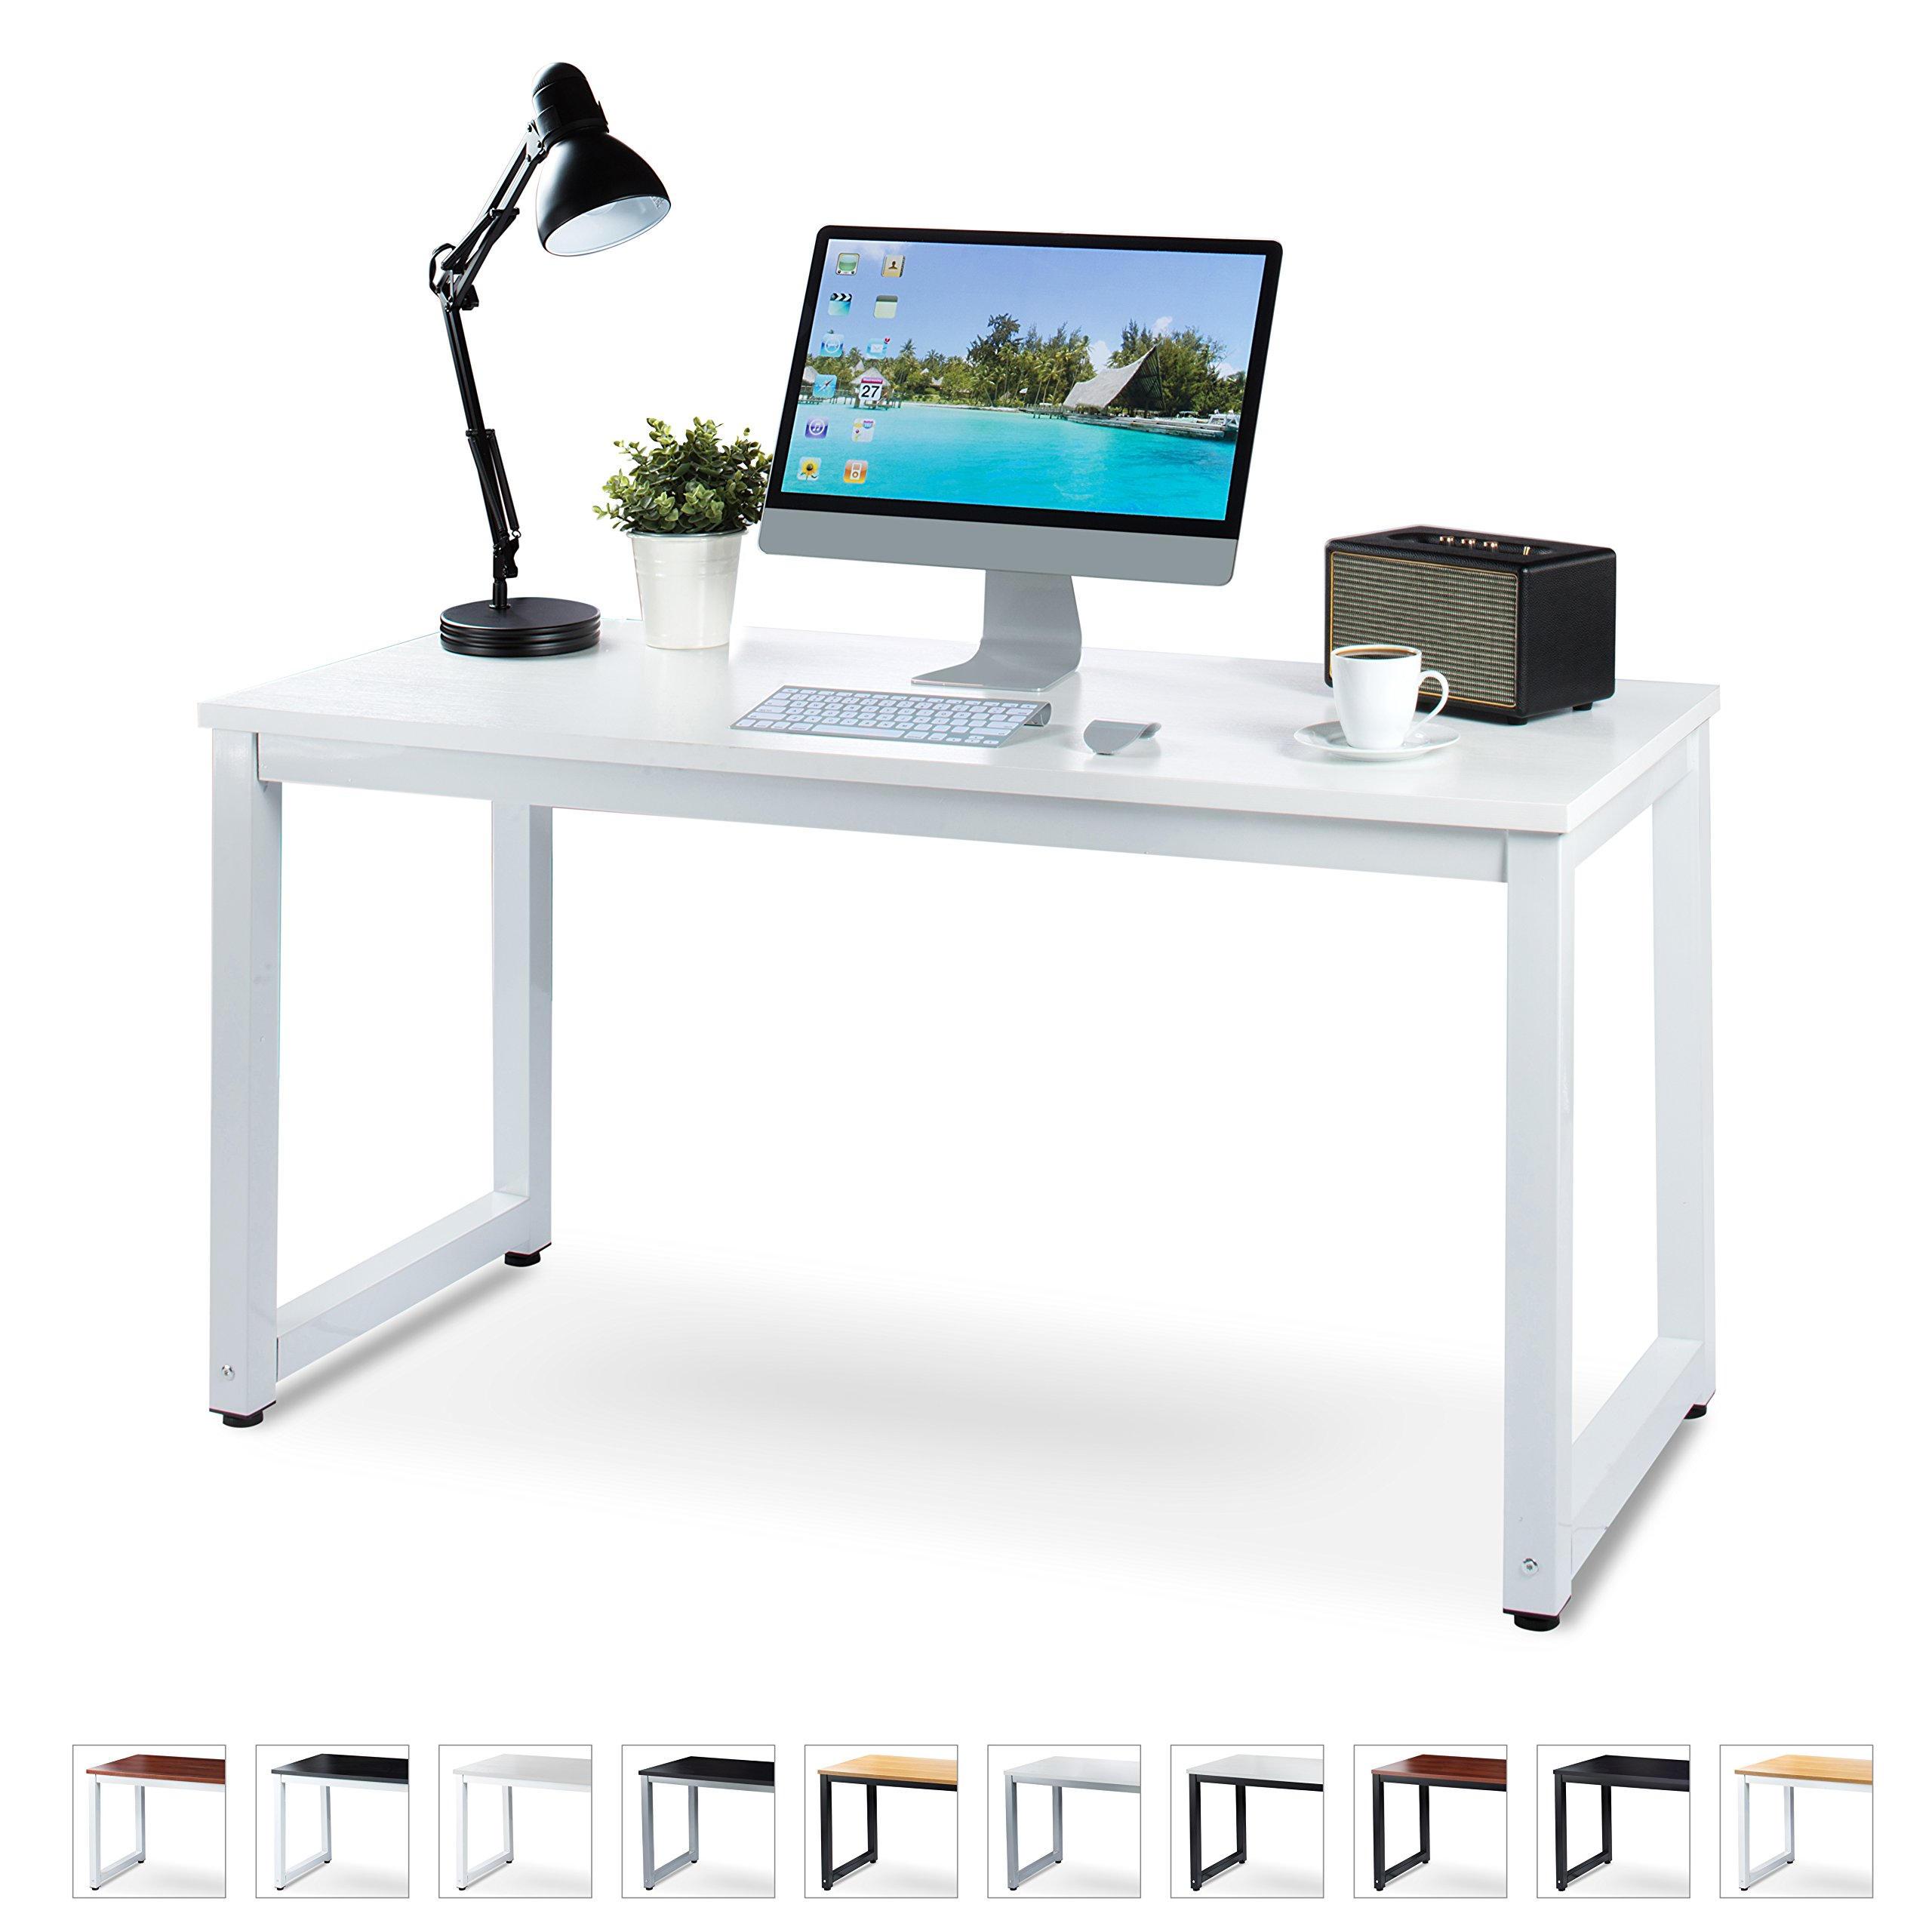 """Office Computer Desk – 55"""" x 23"""" White Laminated Wooden Particleboard Table and White Powder Coated Steel Frame - Work or Home – Easy Assembly - Tools and Instructions Included – by Luxxetta"""